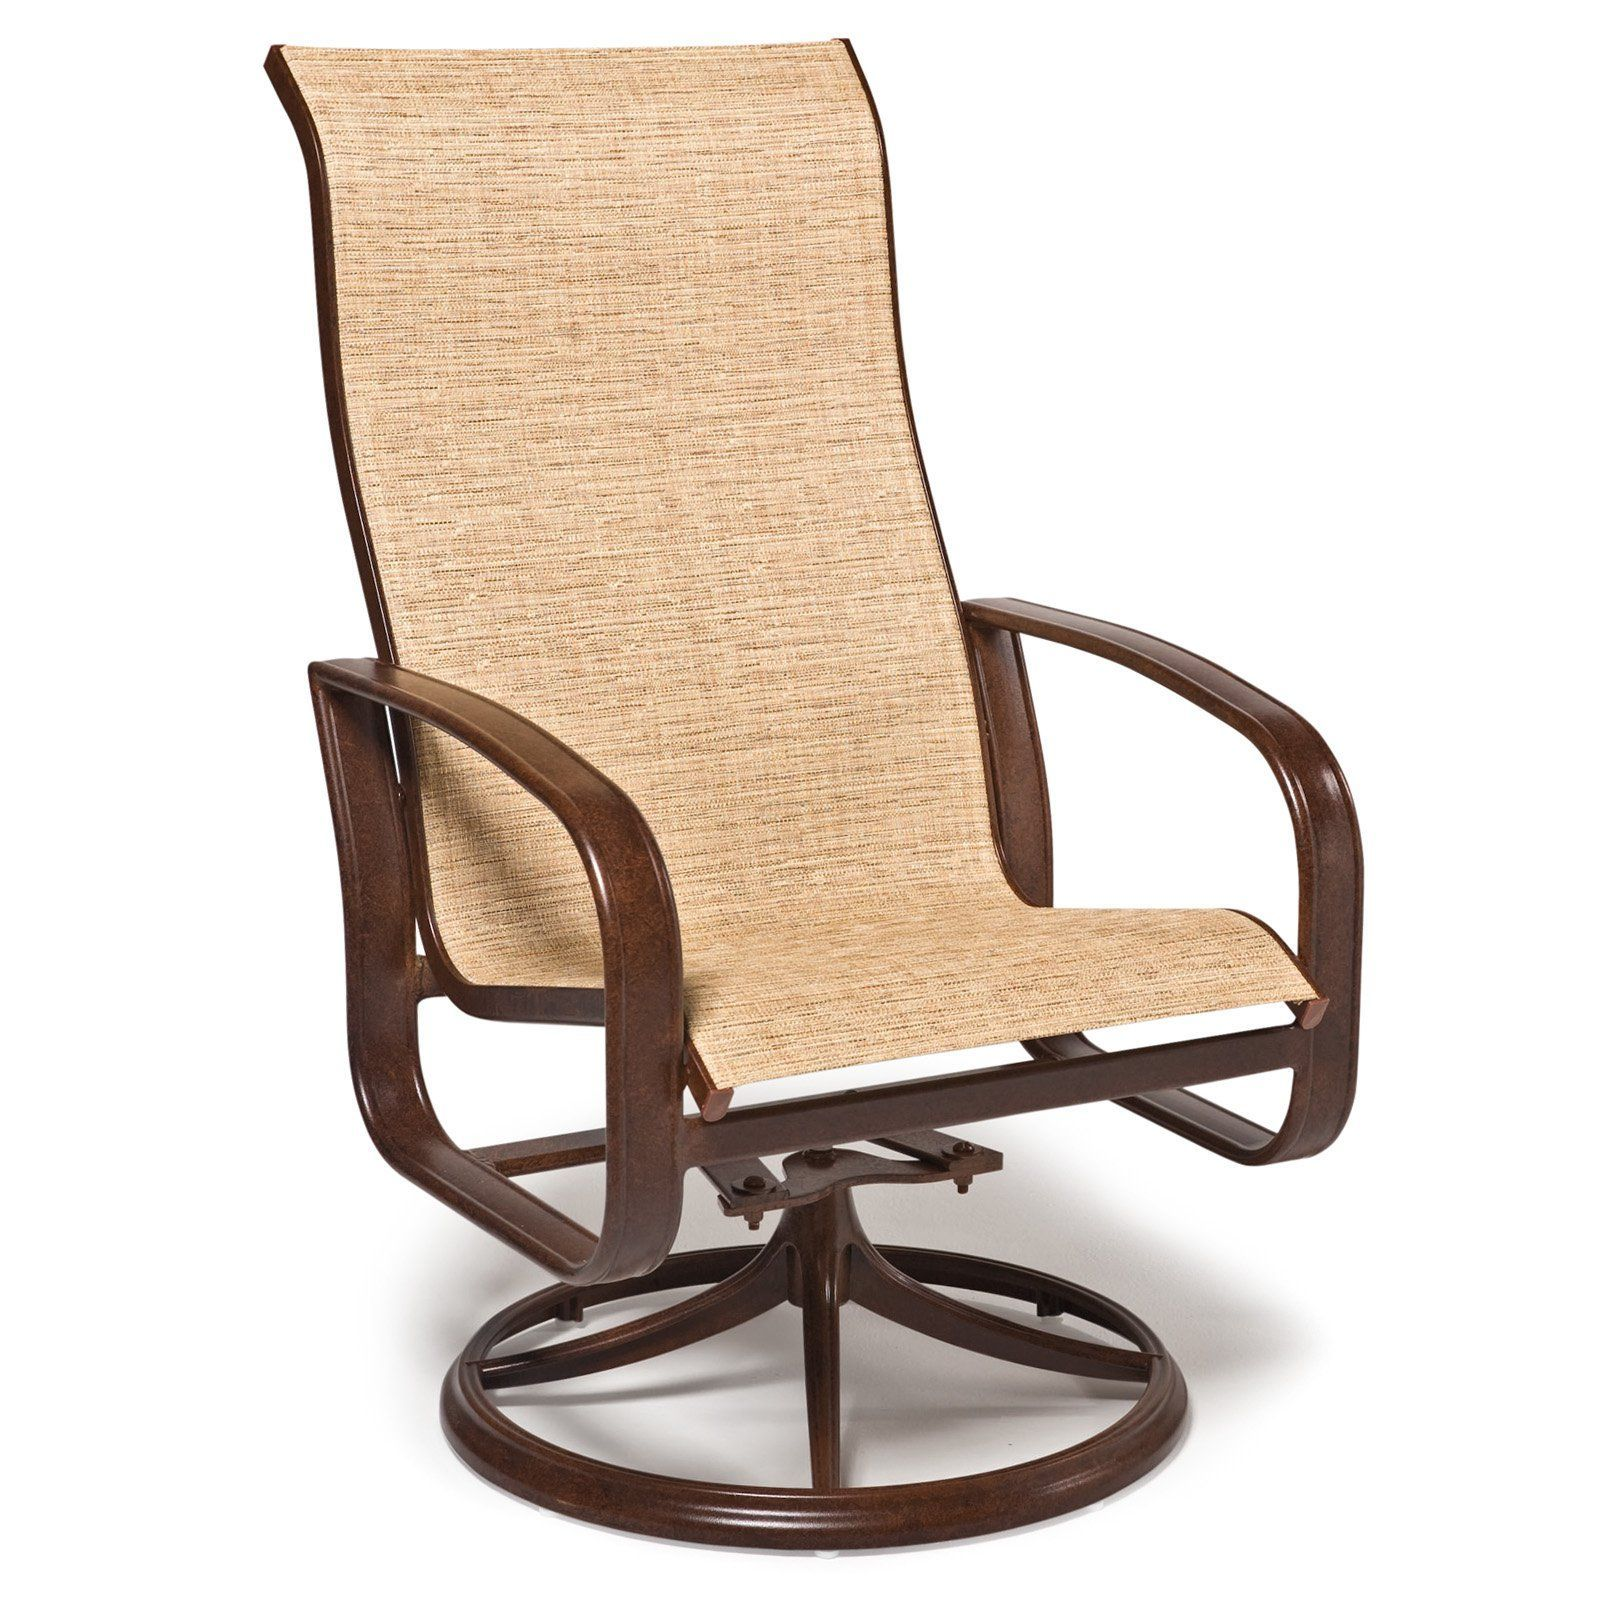 How To Repair Swivel Patio Chair